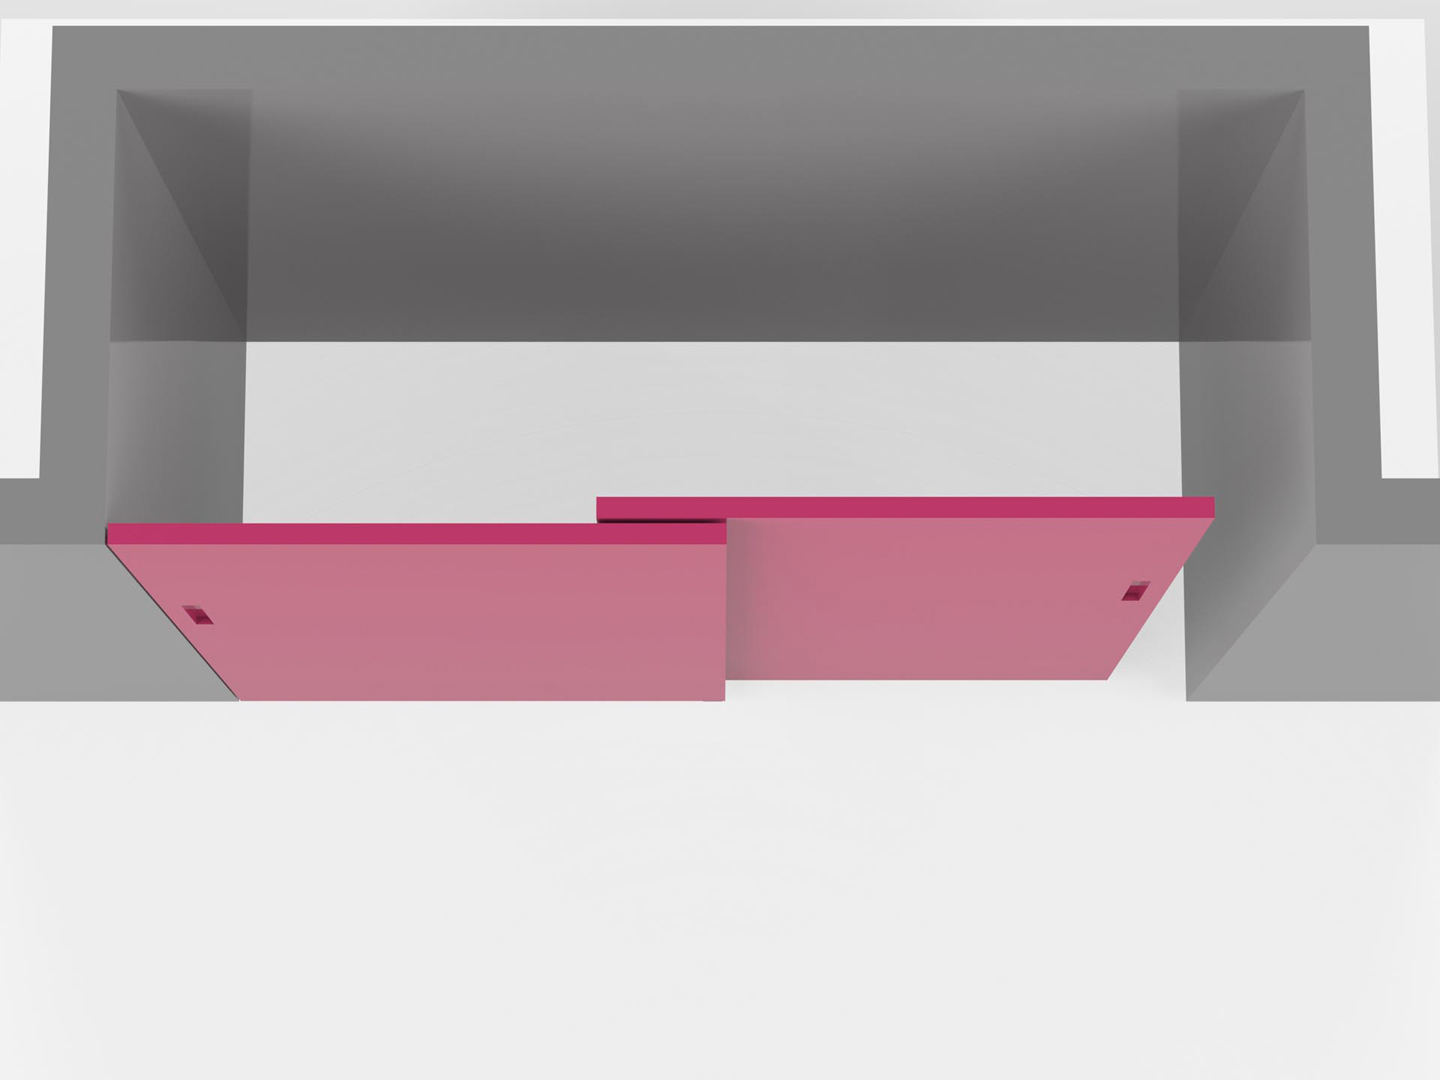 Guide X Ante Scorrevoli.Sliding Panels With A Rail Built Into The Ceiling Evoline3